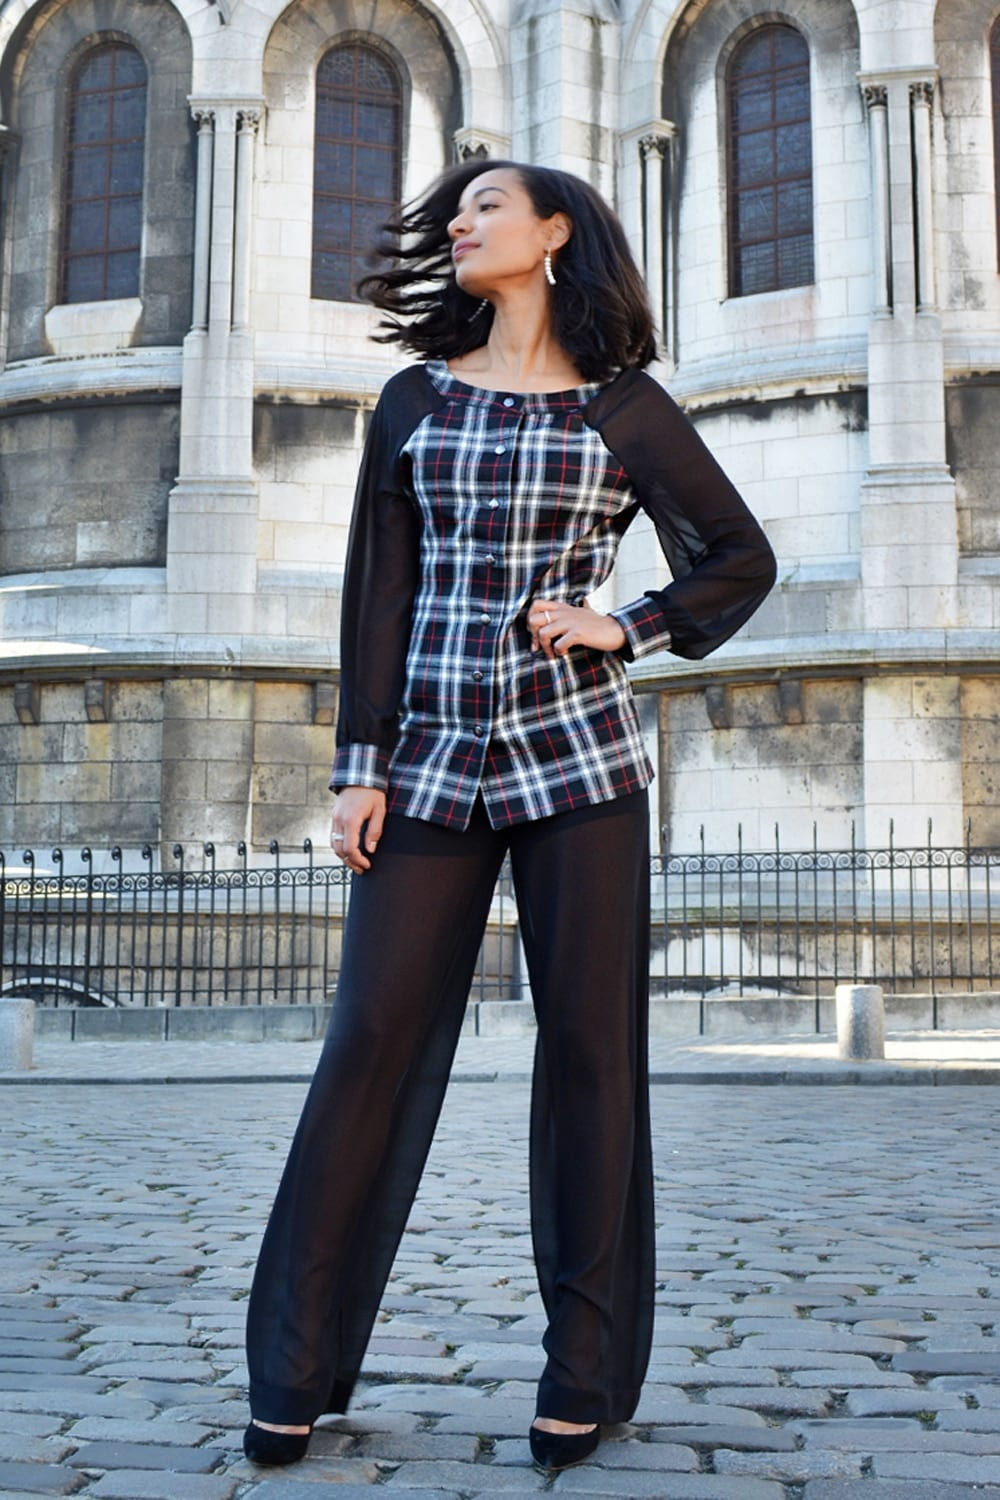 Fashion Paris. Chic and stytlish outfits by Erik Schaix fashion designer Paris.